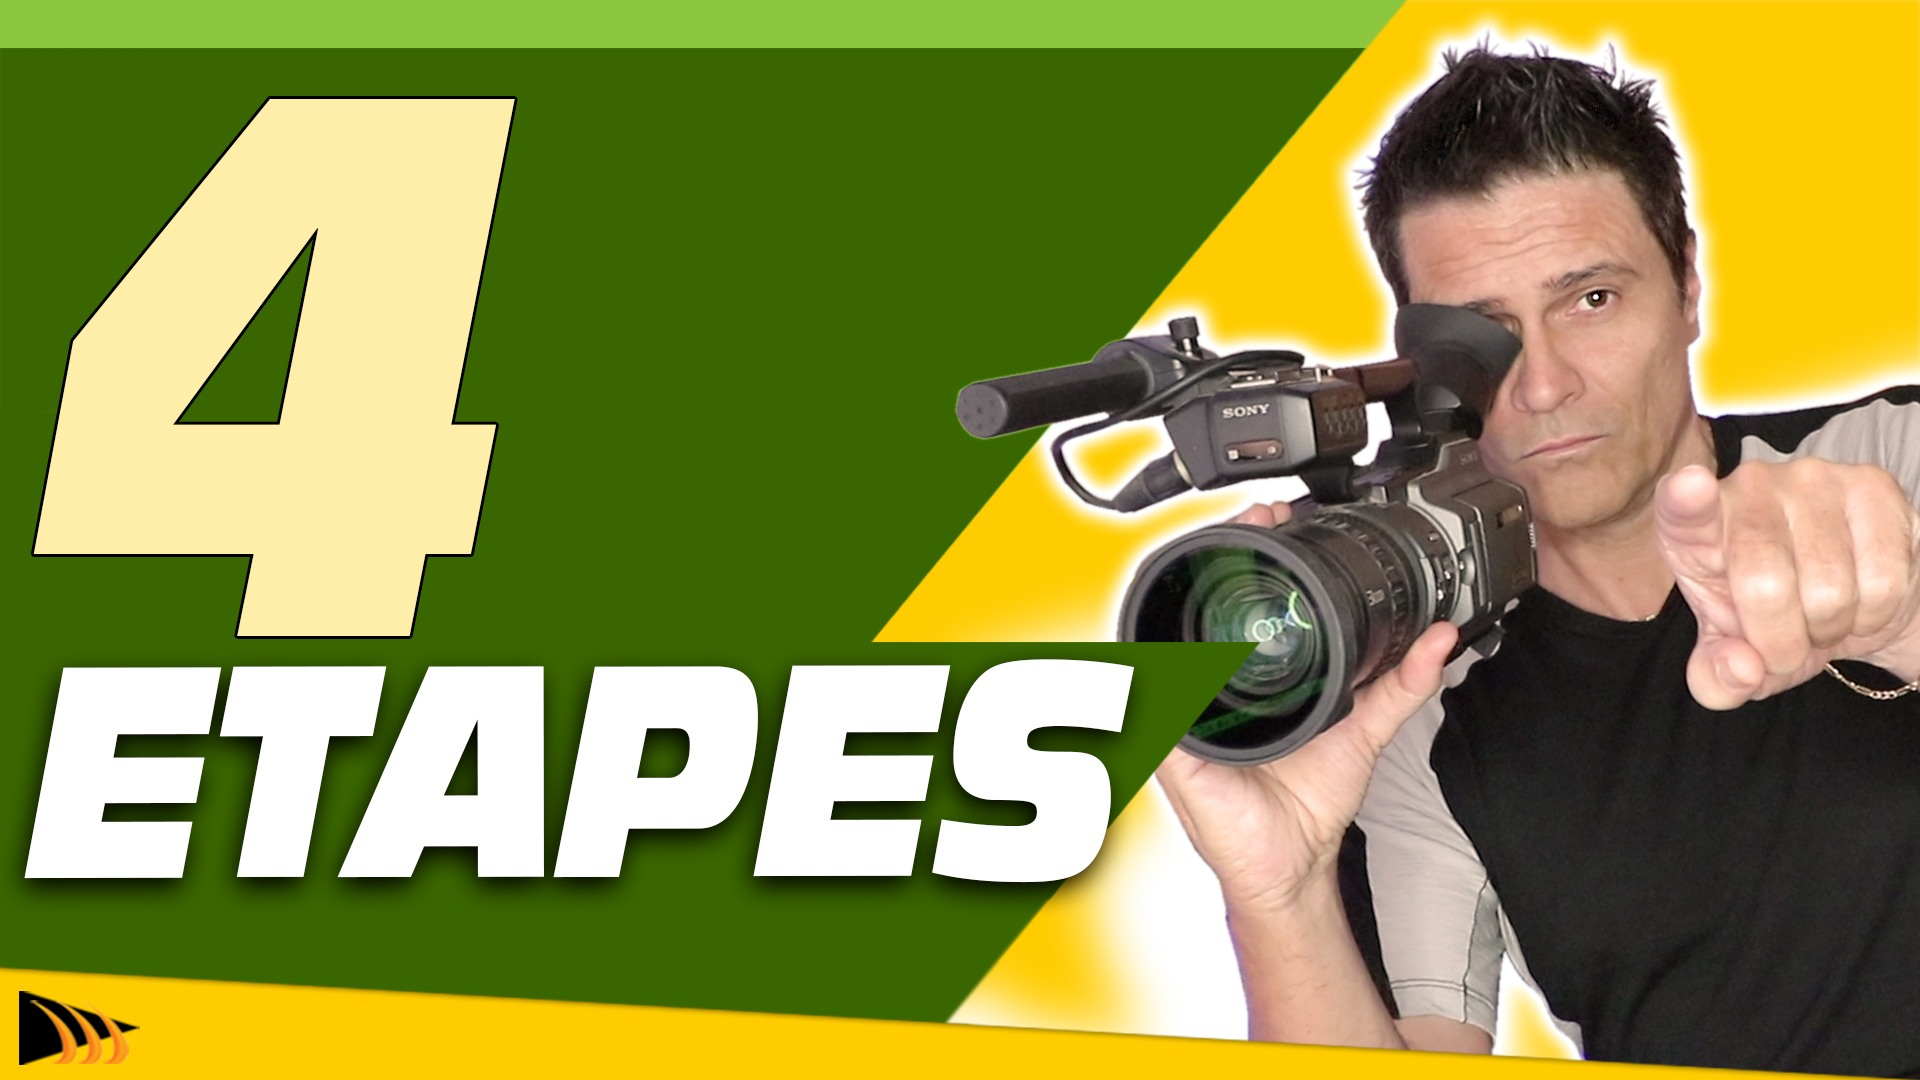 comment faire une formation video   4  u00c9tapes simples